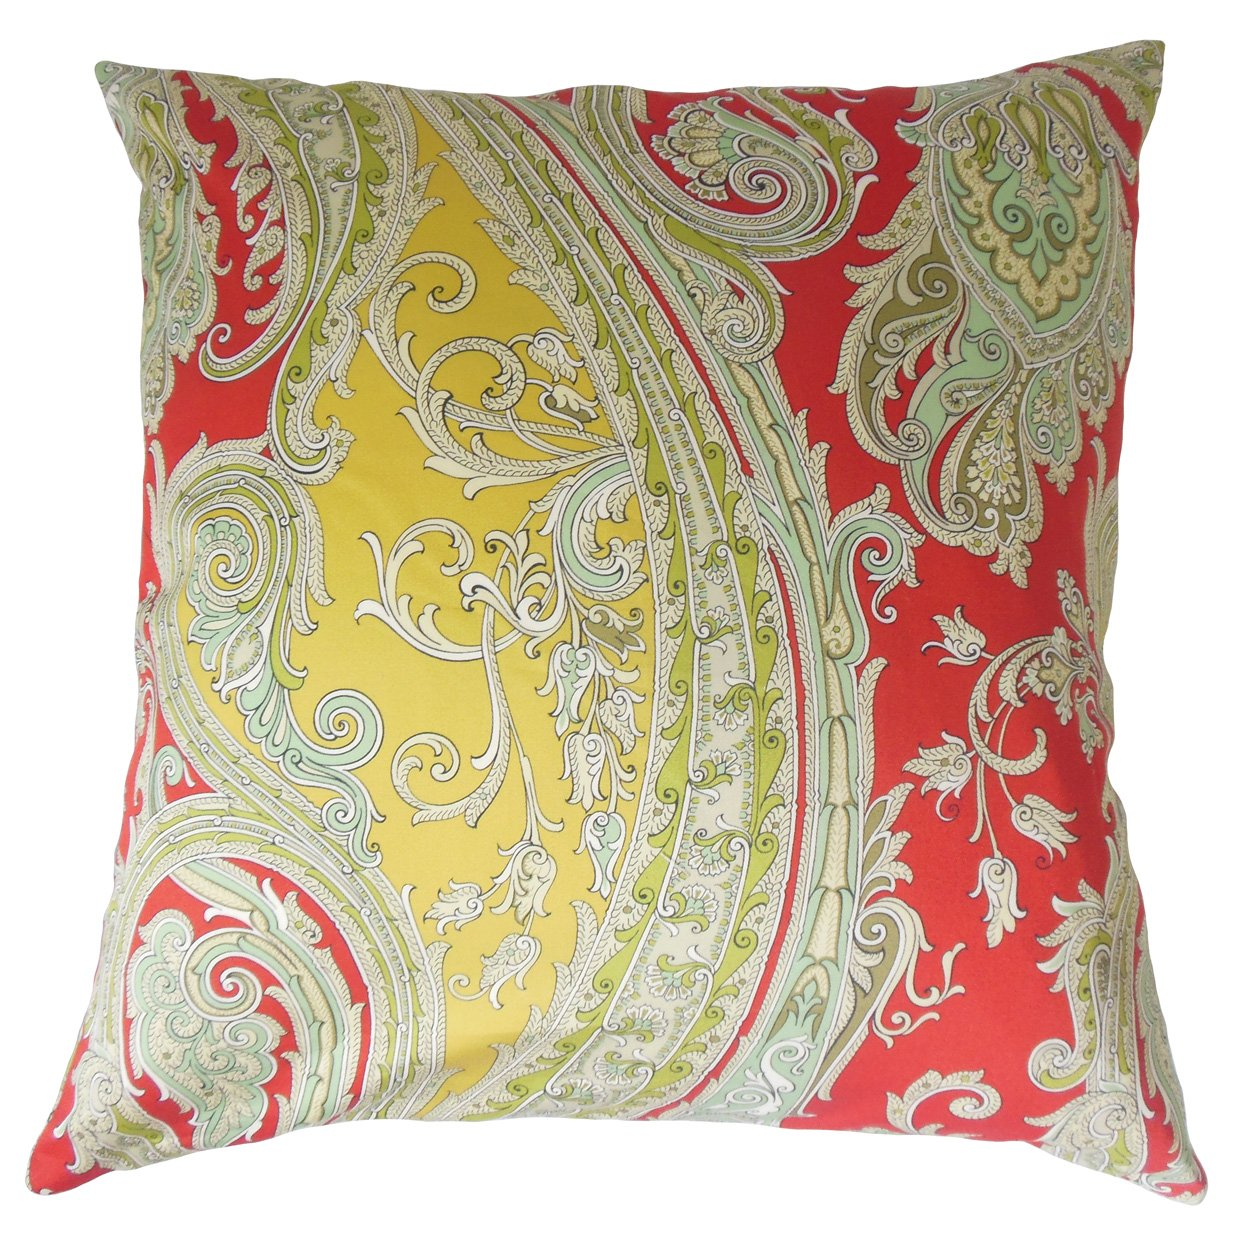 Lacquer Red The Pillow Collection P18-ROB-FUNPAISLEY-LACQUERRED-C100 Efharis Paisley Pillow